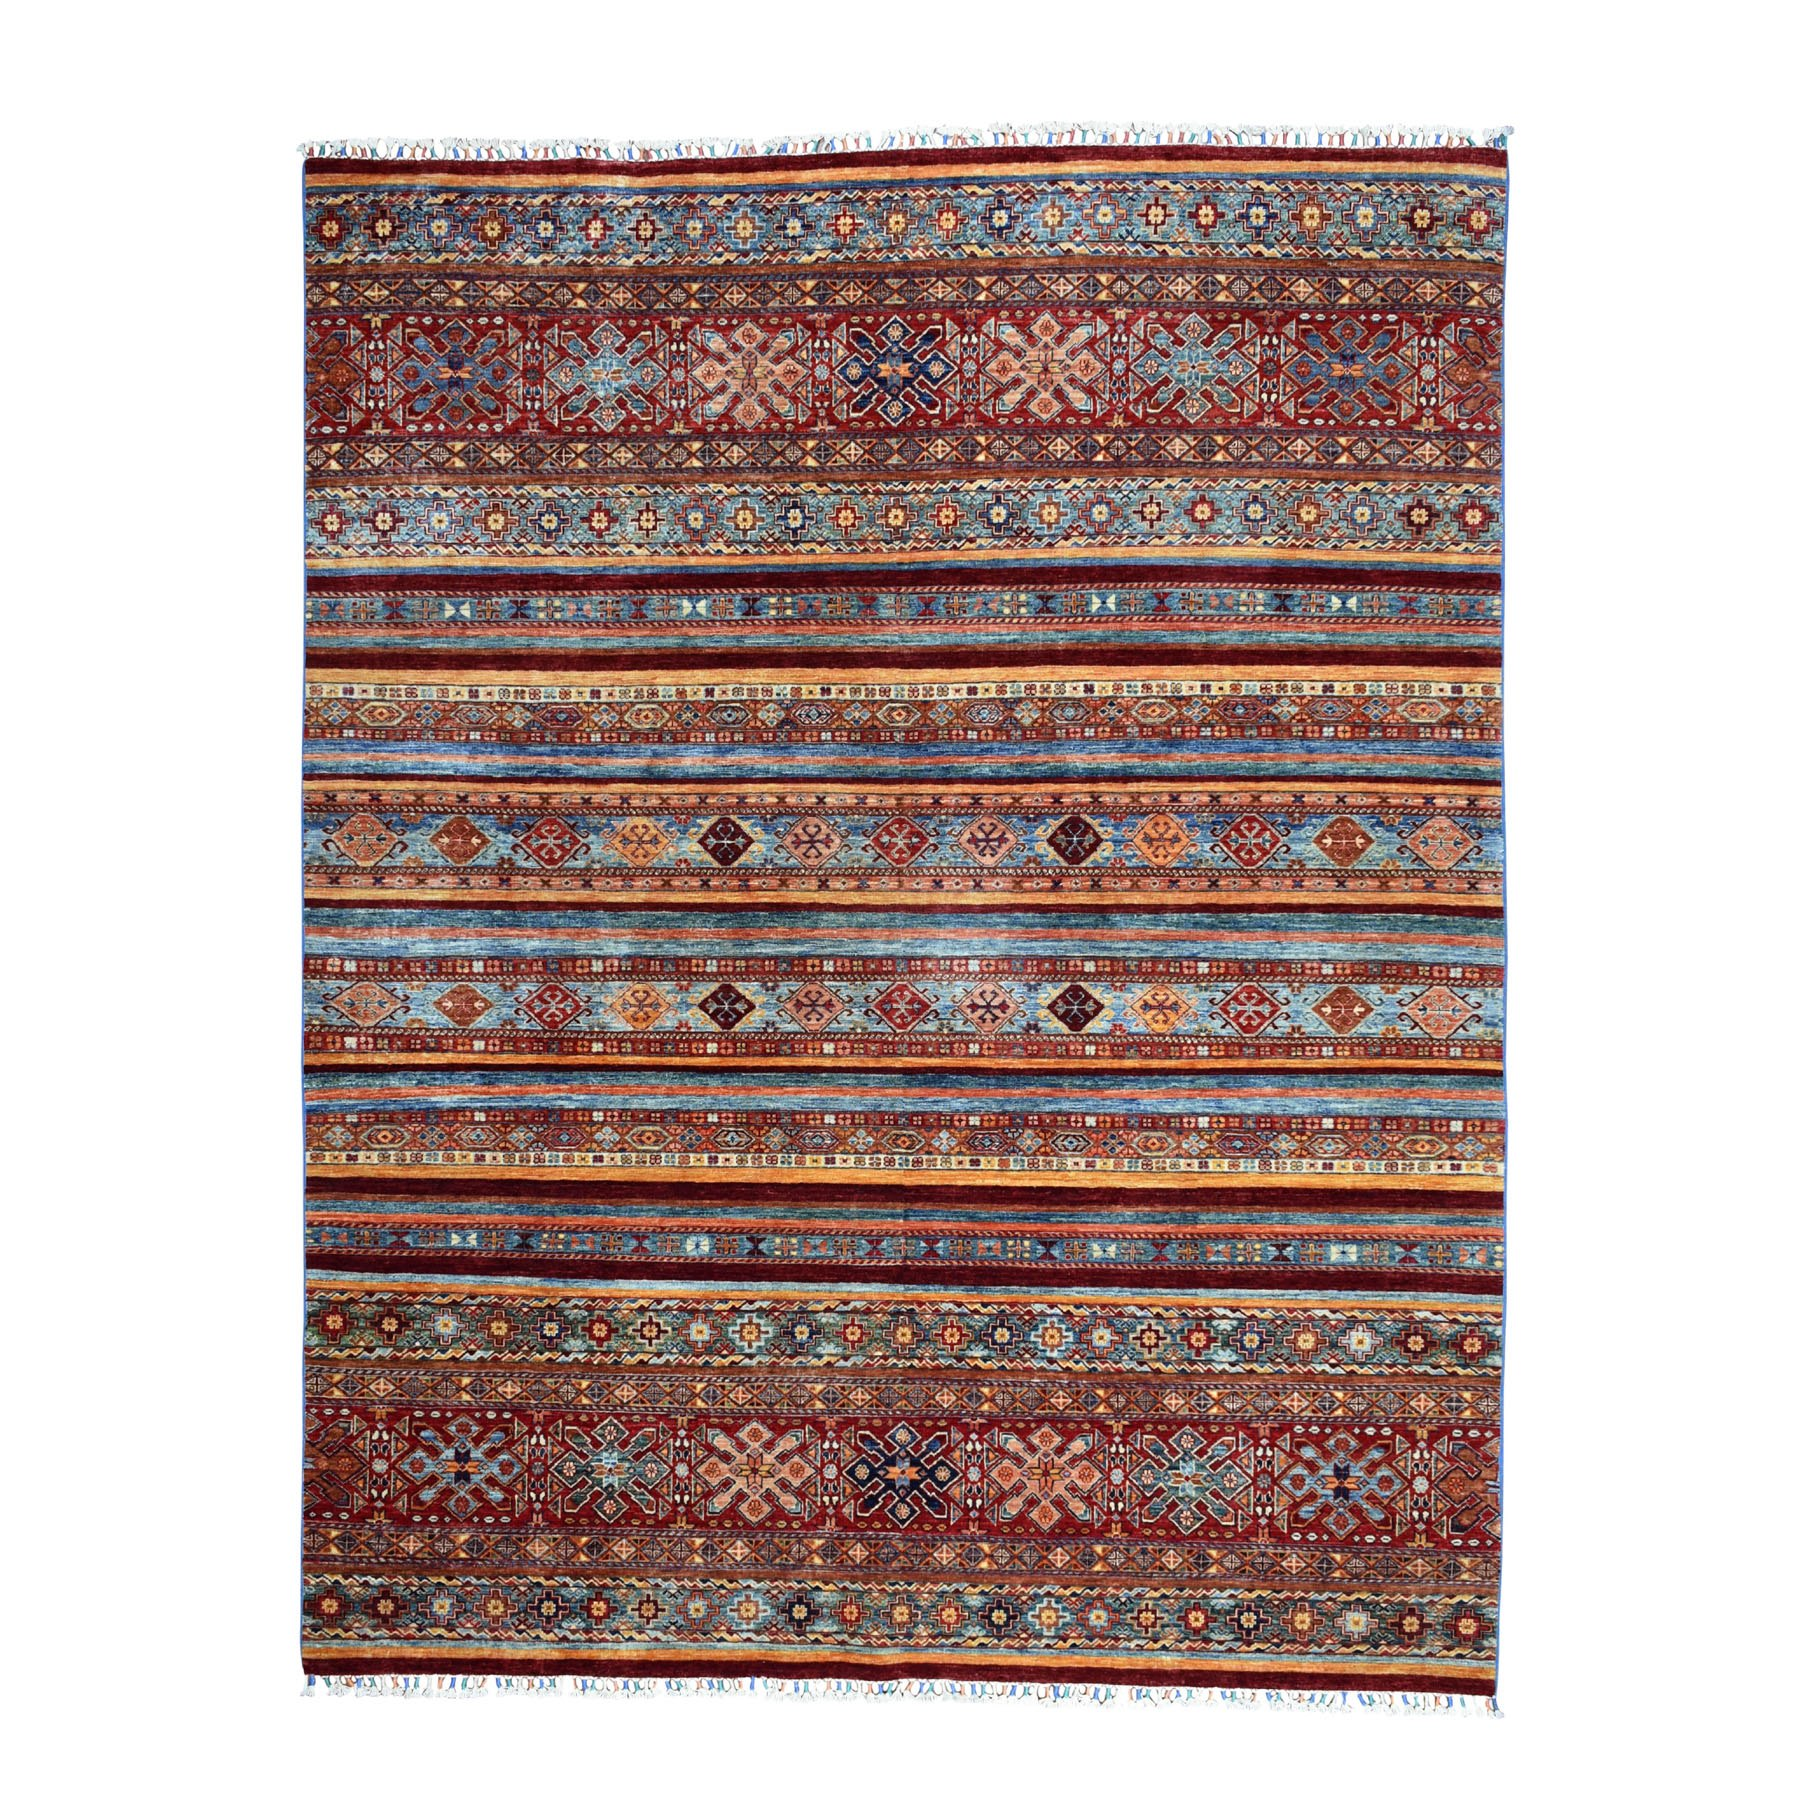 8'X10' Khorjin Design Colorful Super Kazak Pure Wool Hand Knotted Oriental Rug moaebbe6